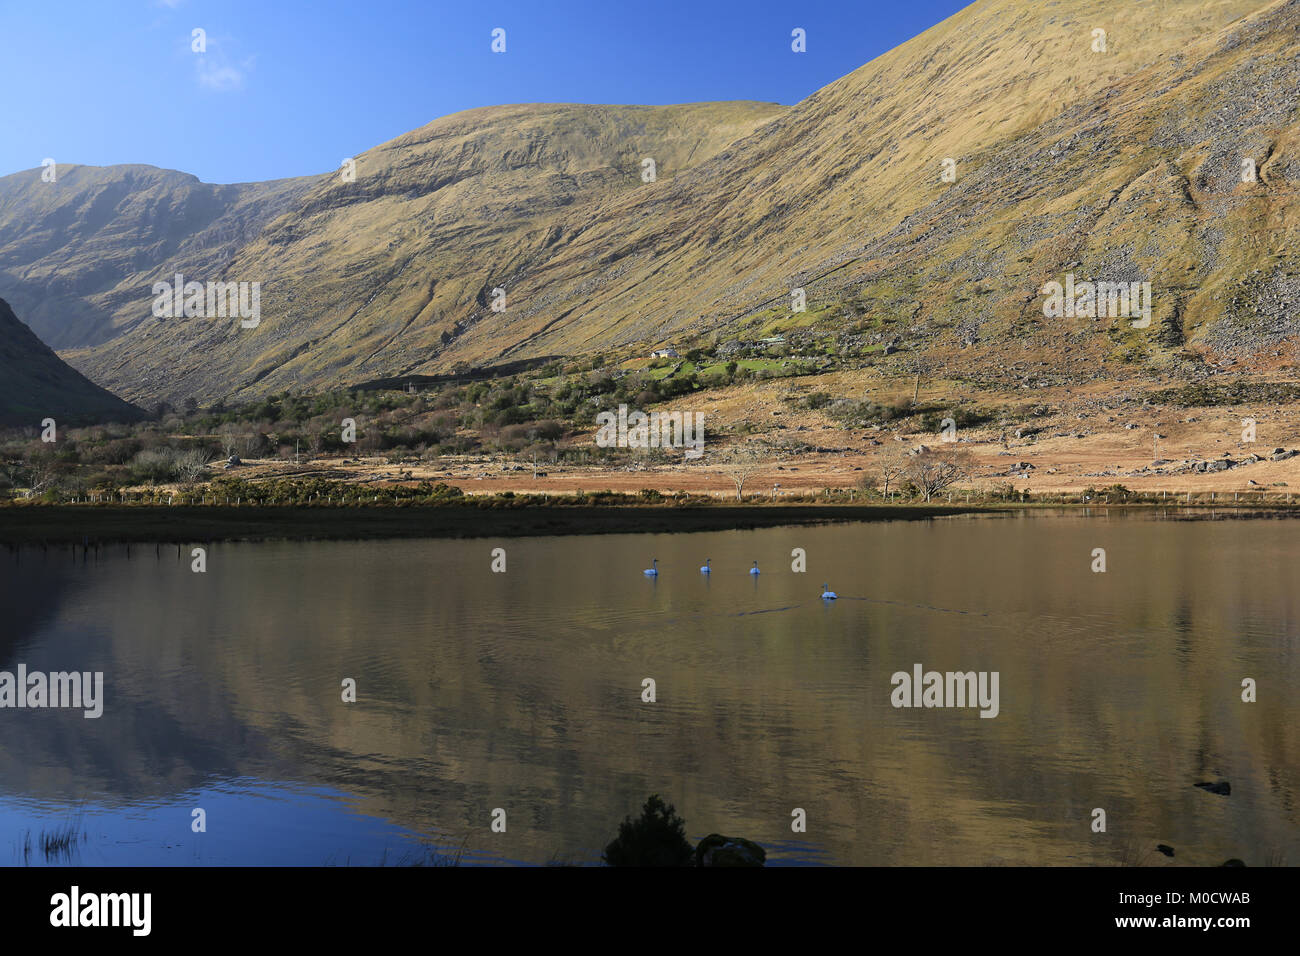 lake views in  county kerry, Ireland - Stock Image